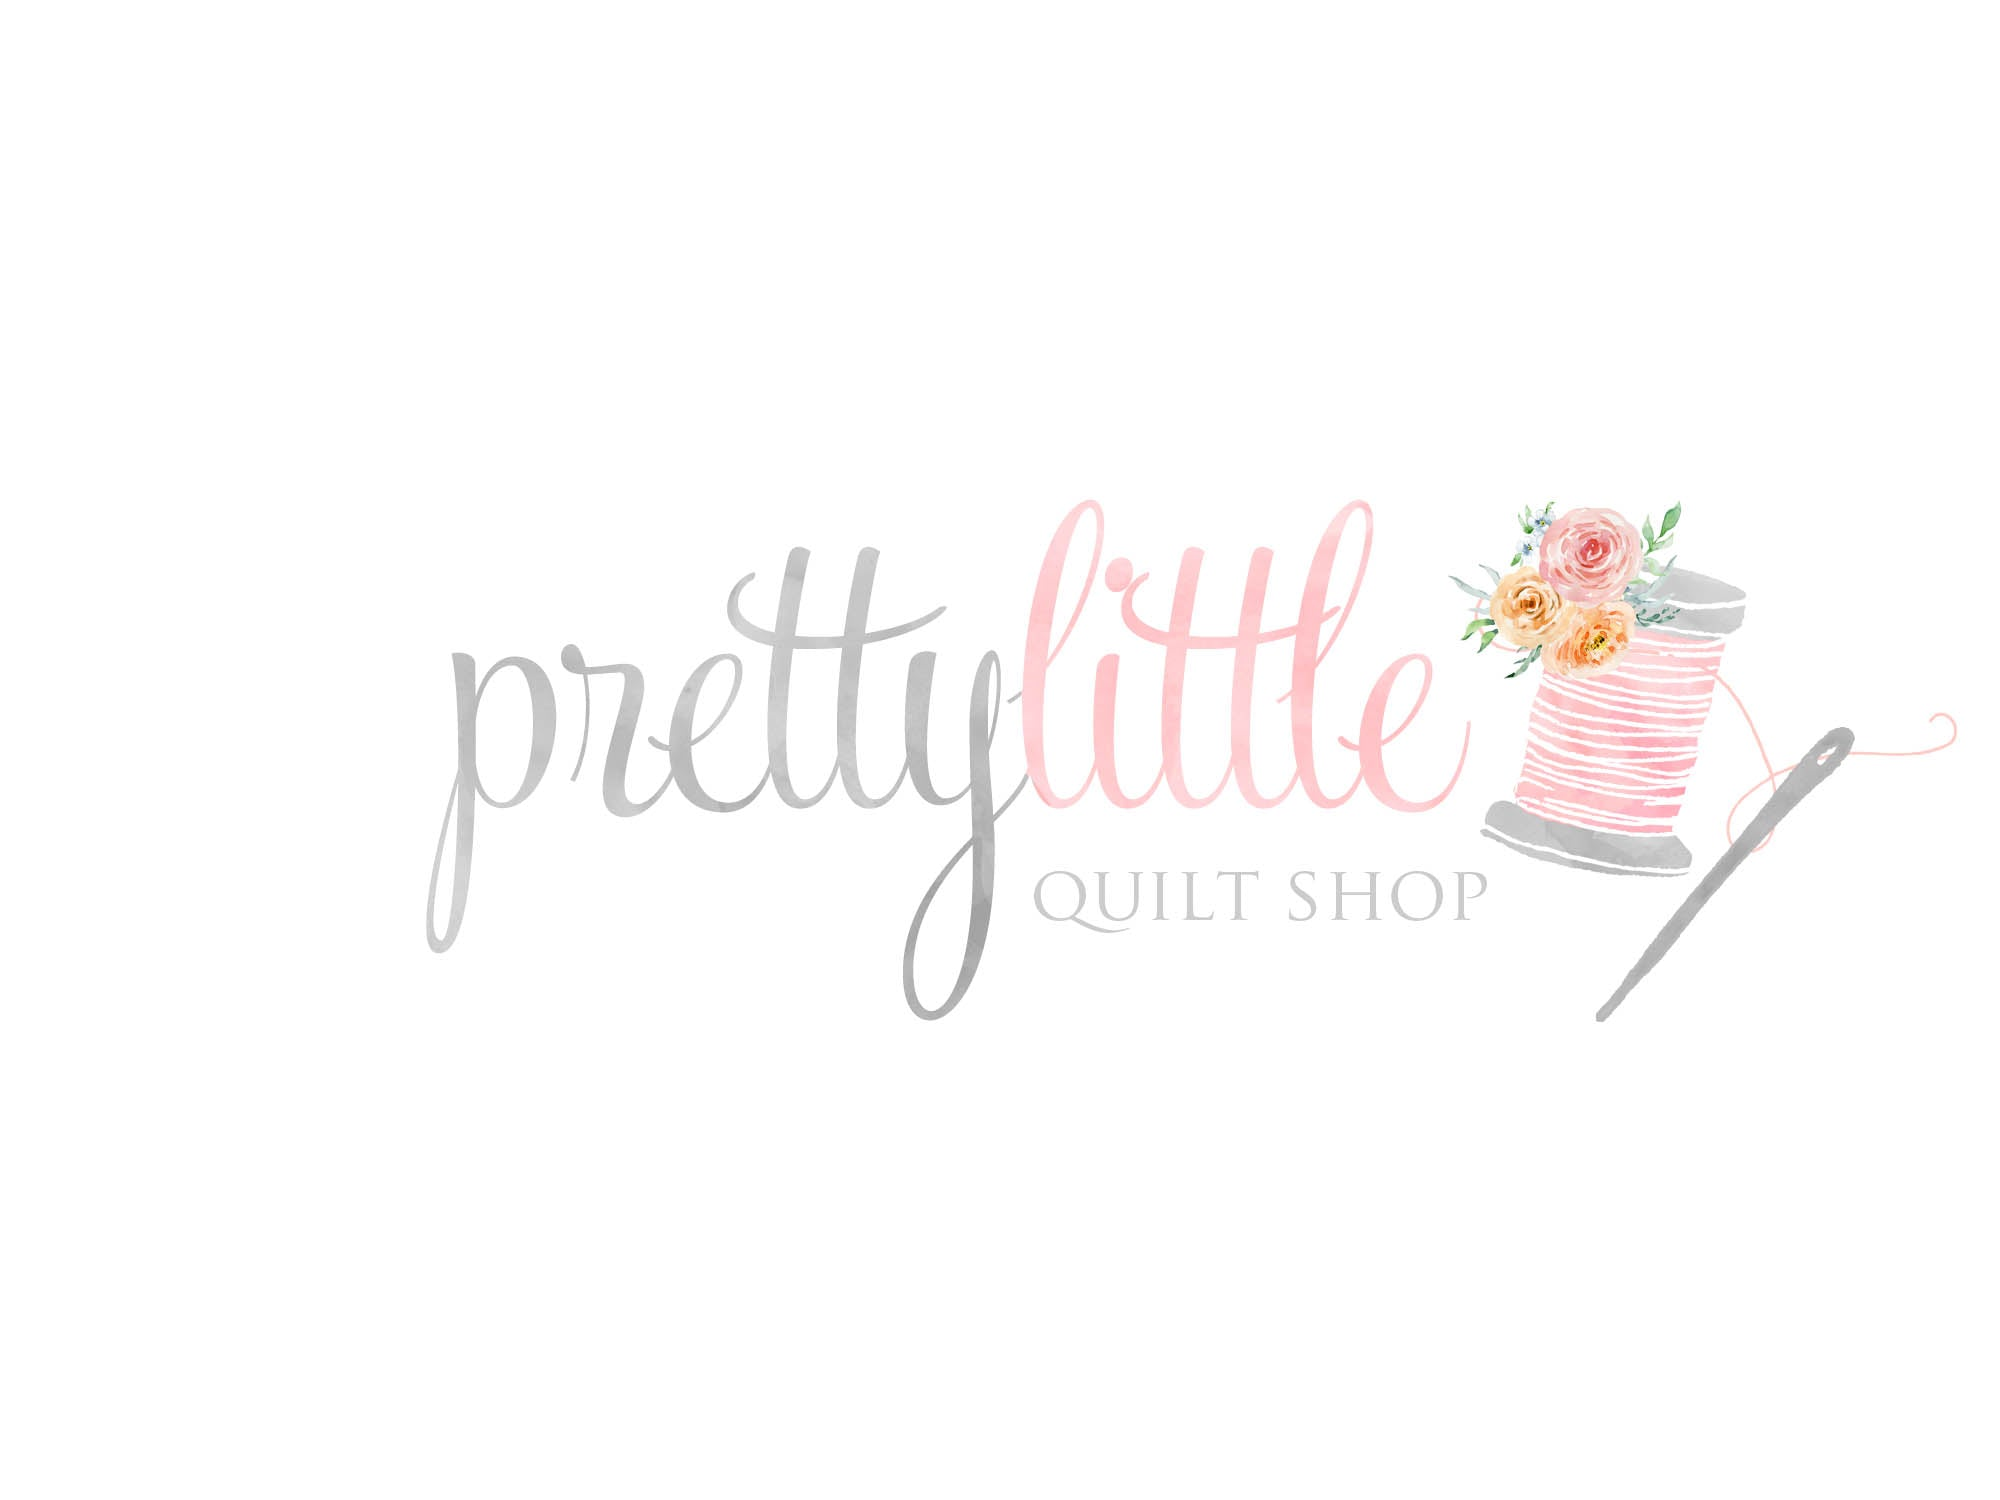 Gift Card Pretty Little Quilt Shop